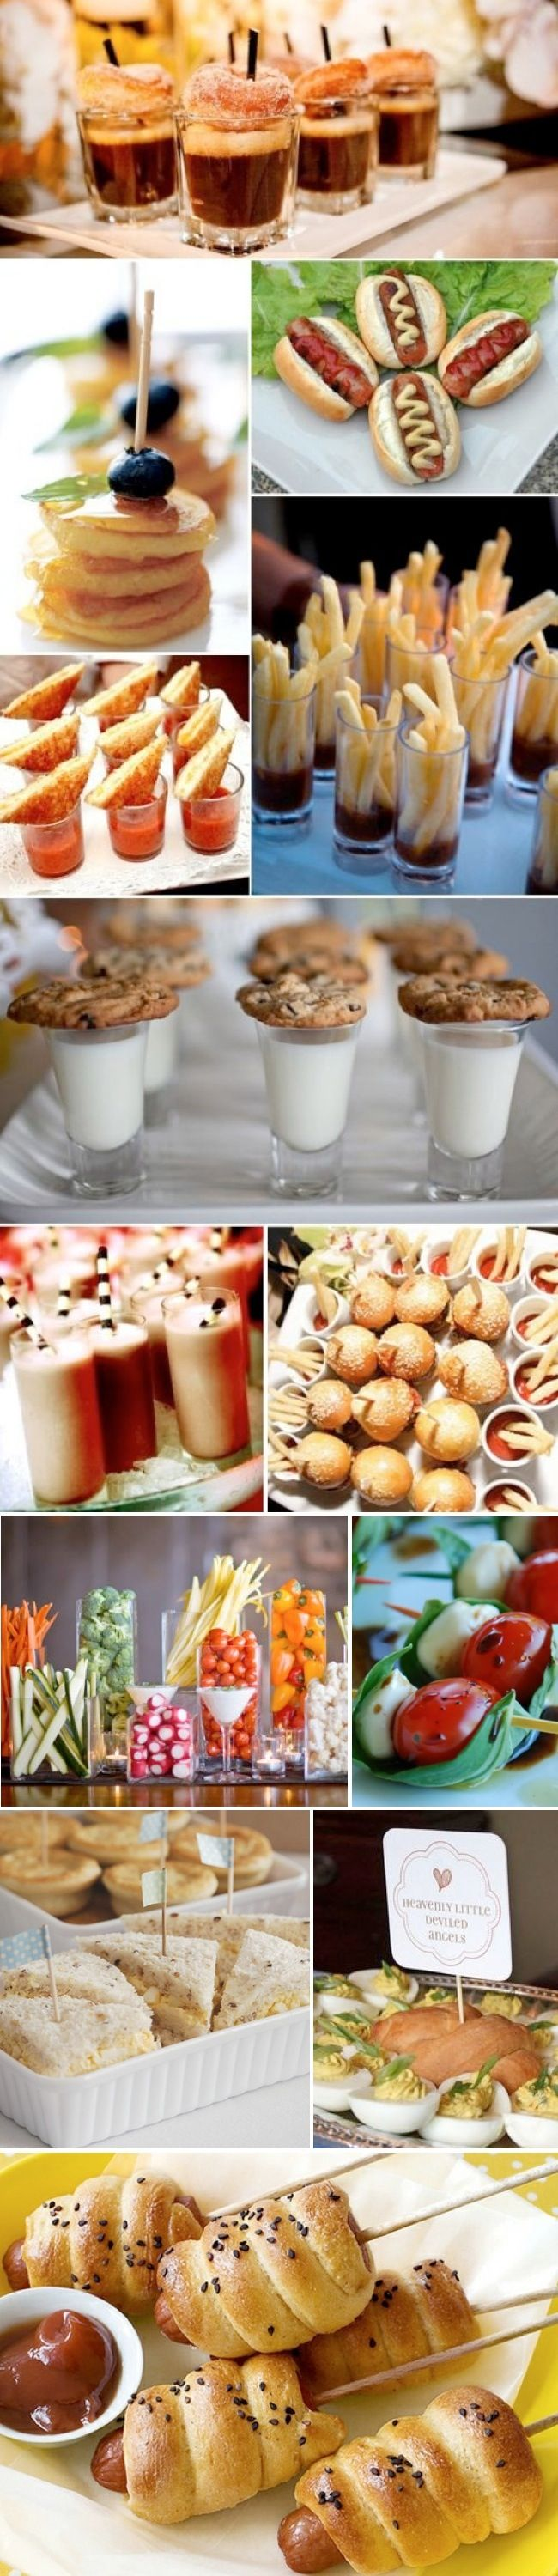 wedding food favorite finger foods and